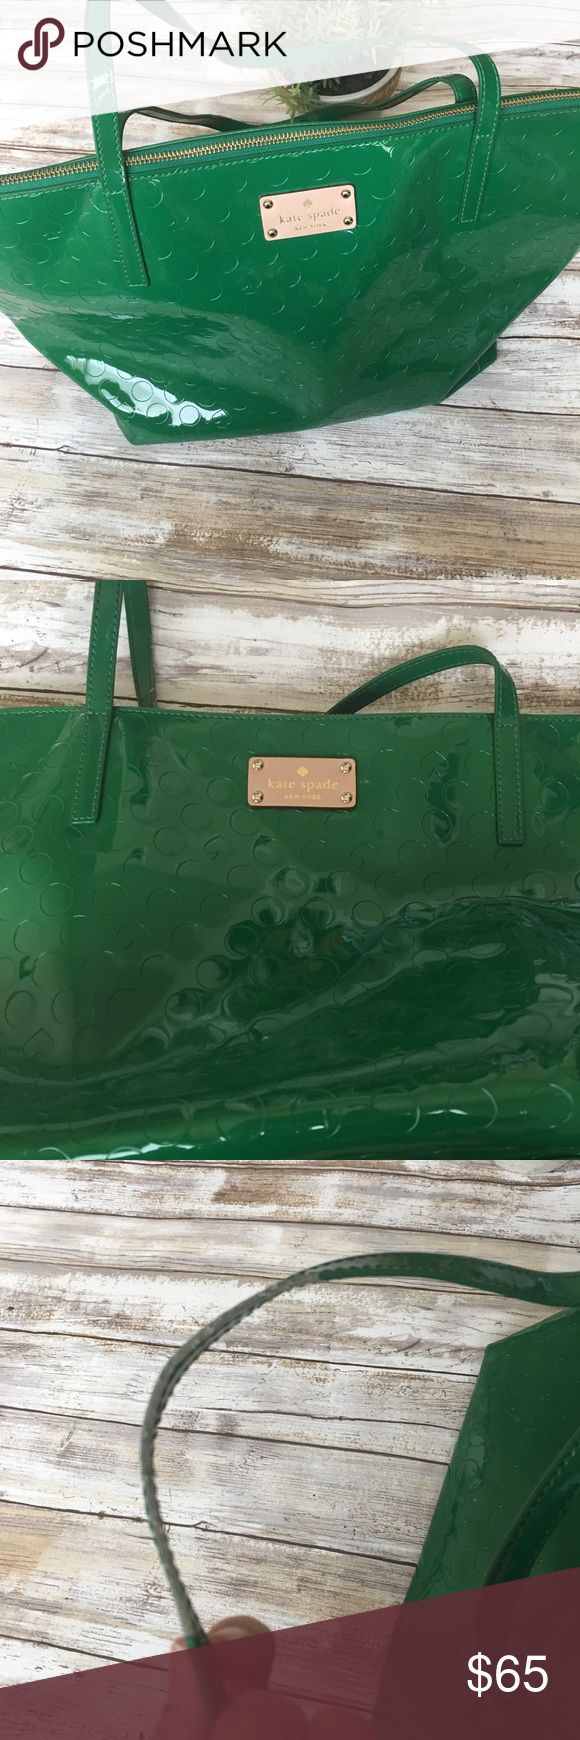 Kate Spade Green Polka Dot Tote Bag 100% Authentic! 💯 Super cute green tote bag from Kate Spade! Has a polka dot and Spade print. Inside has one zip pocket and two slip pockets. Perfect bag to carry your essentials for school or work. Bag is in overall excellent condition besides the top handles. They are peeling on the sides and are showing some of the threading. Price reflected on condition. kate spade Bags Totes